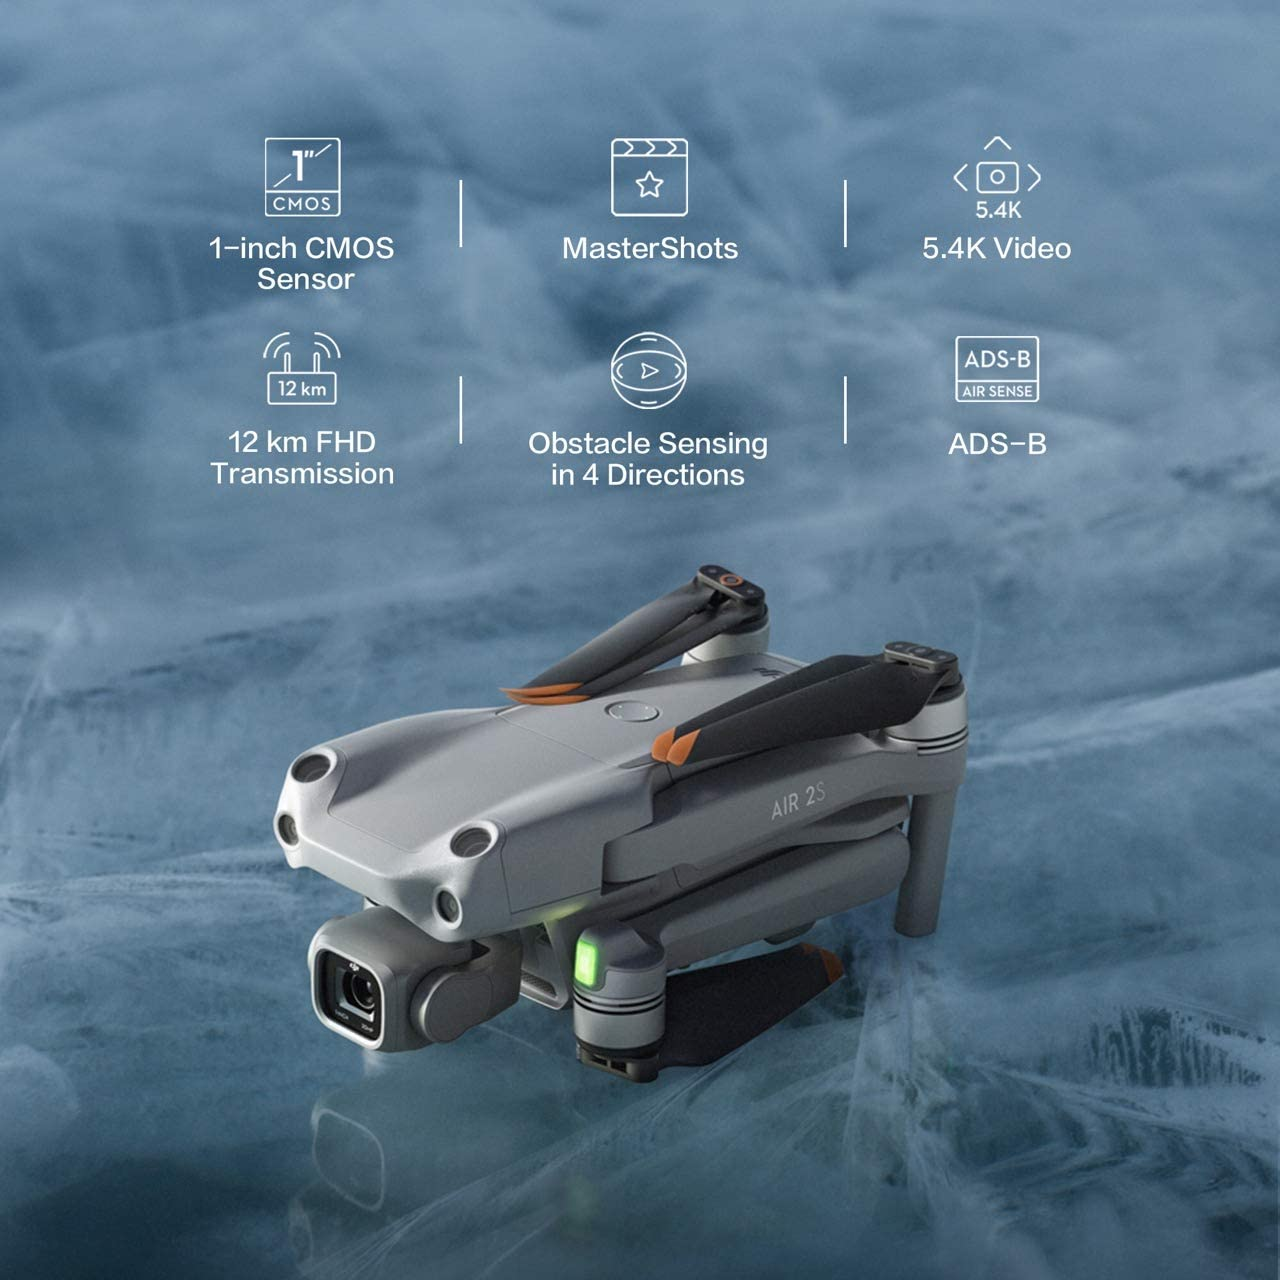 DJI Air 2S Drone - Folded, above showing main features